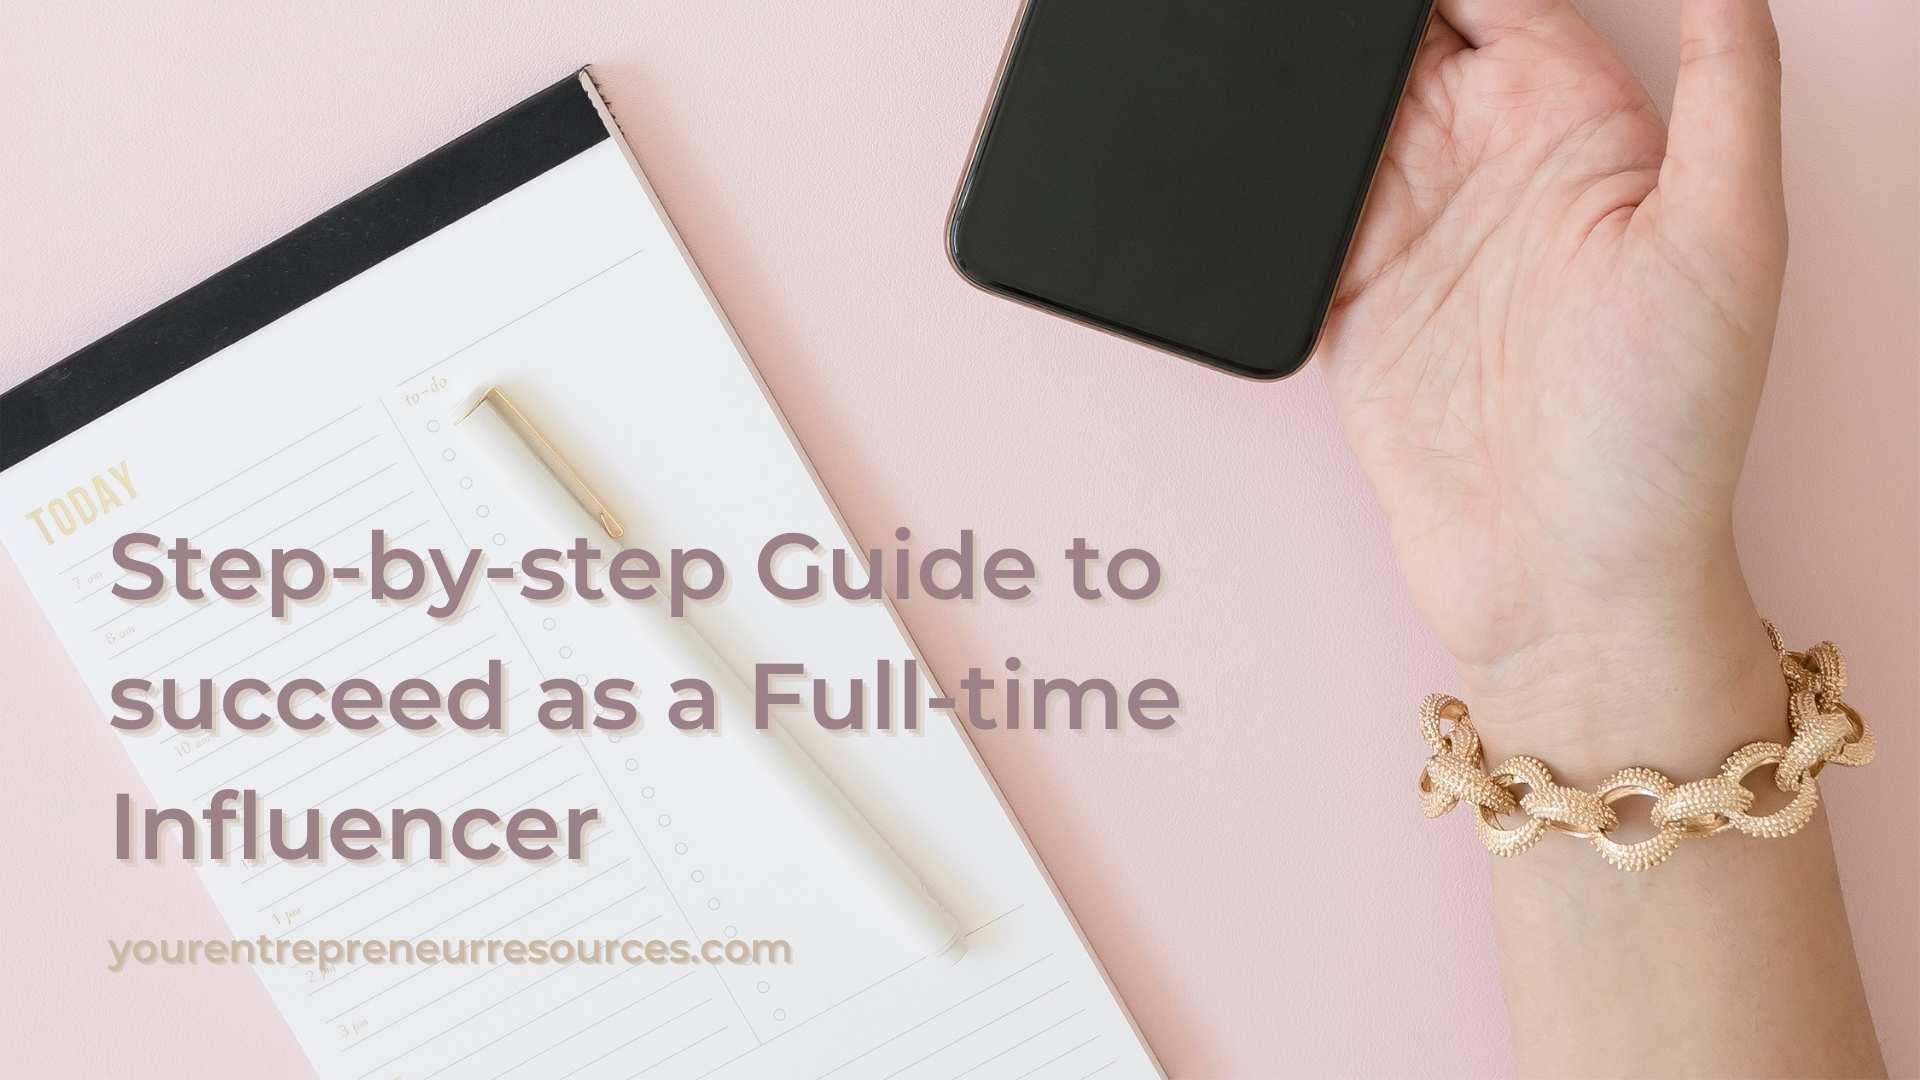 How to become an influencer Step-by-step guide to succeed as a Full-time influencer